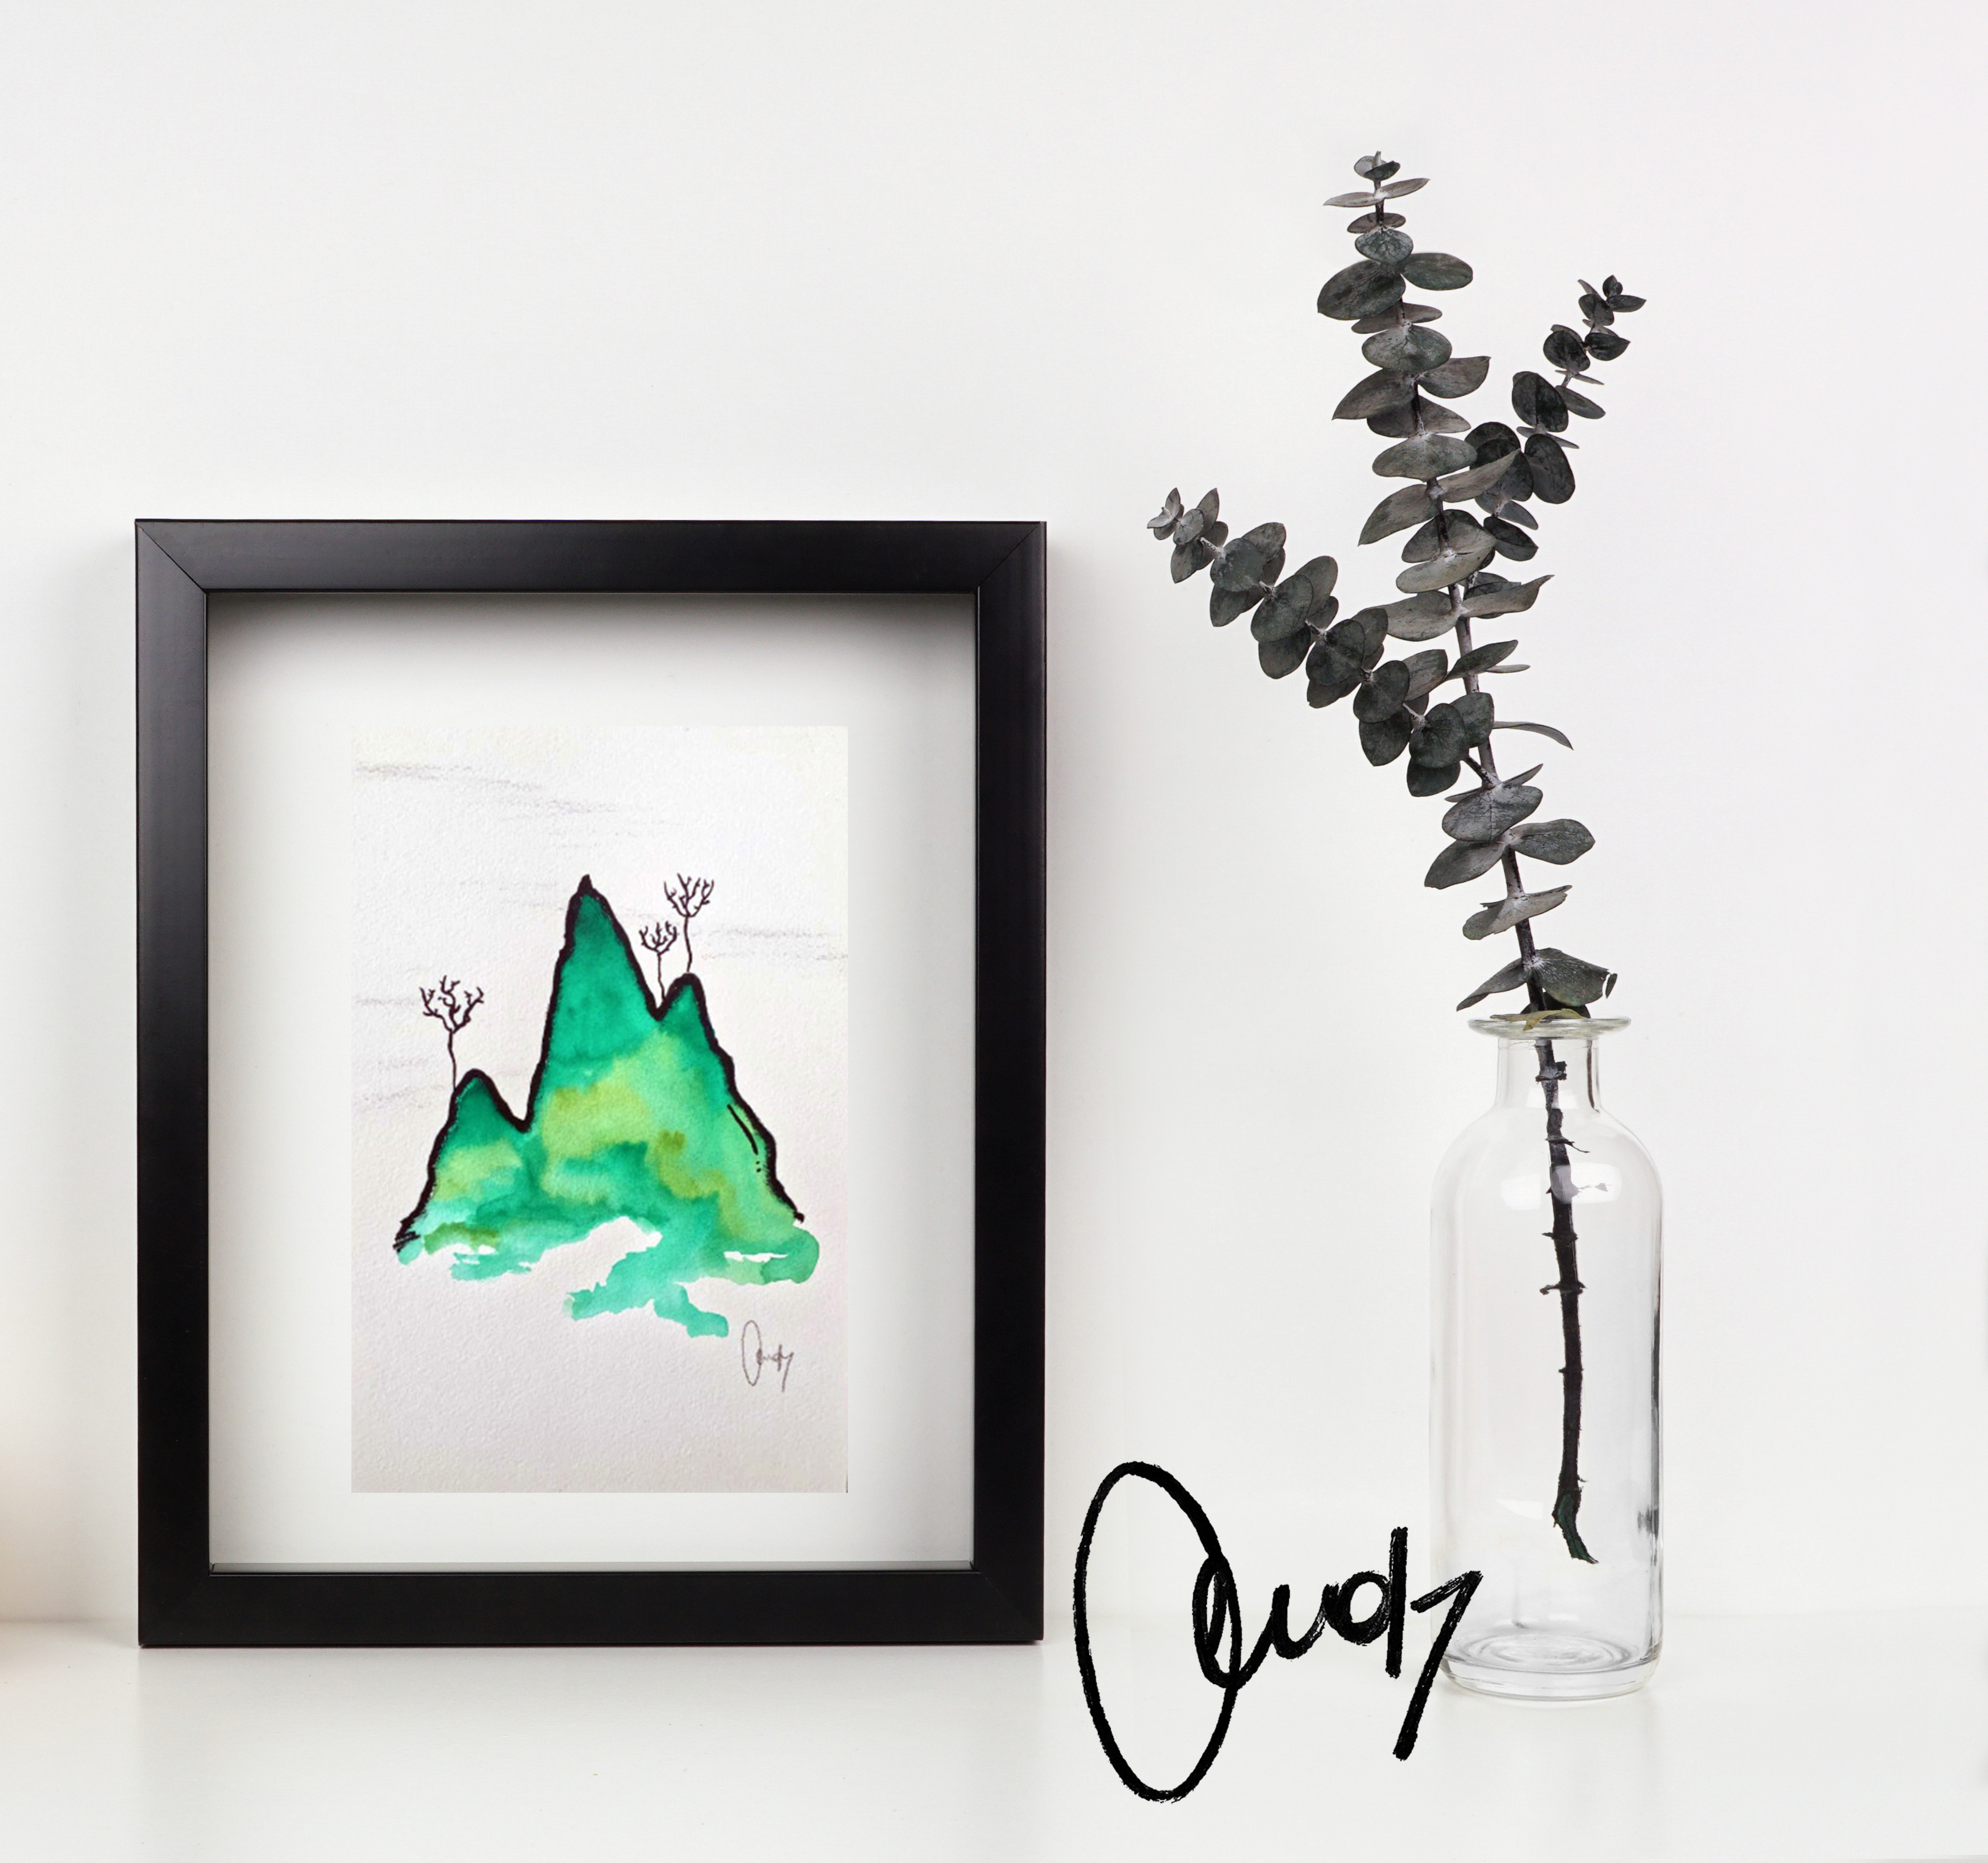 Trees - Disponible/Available